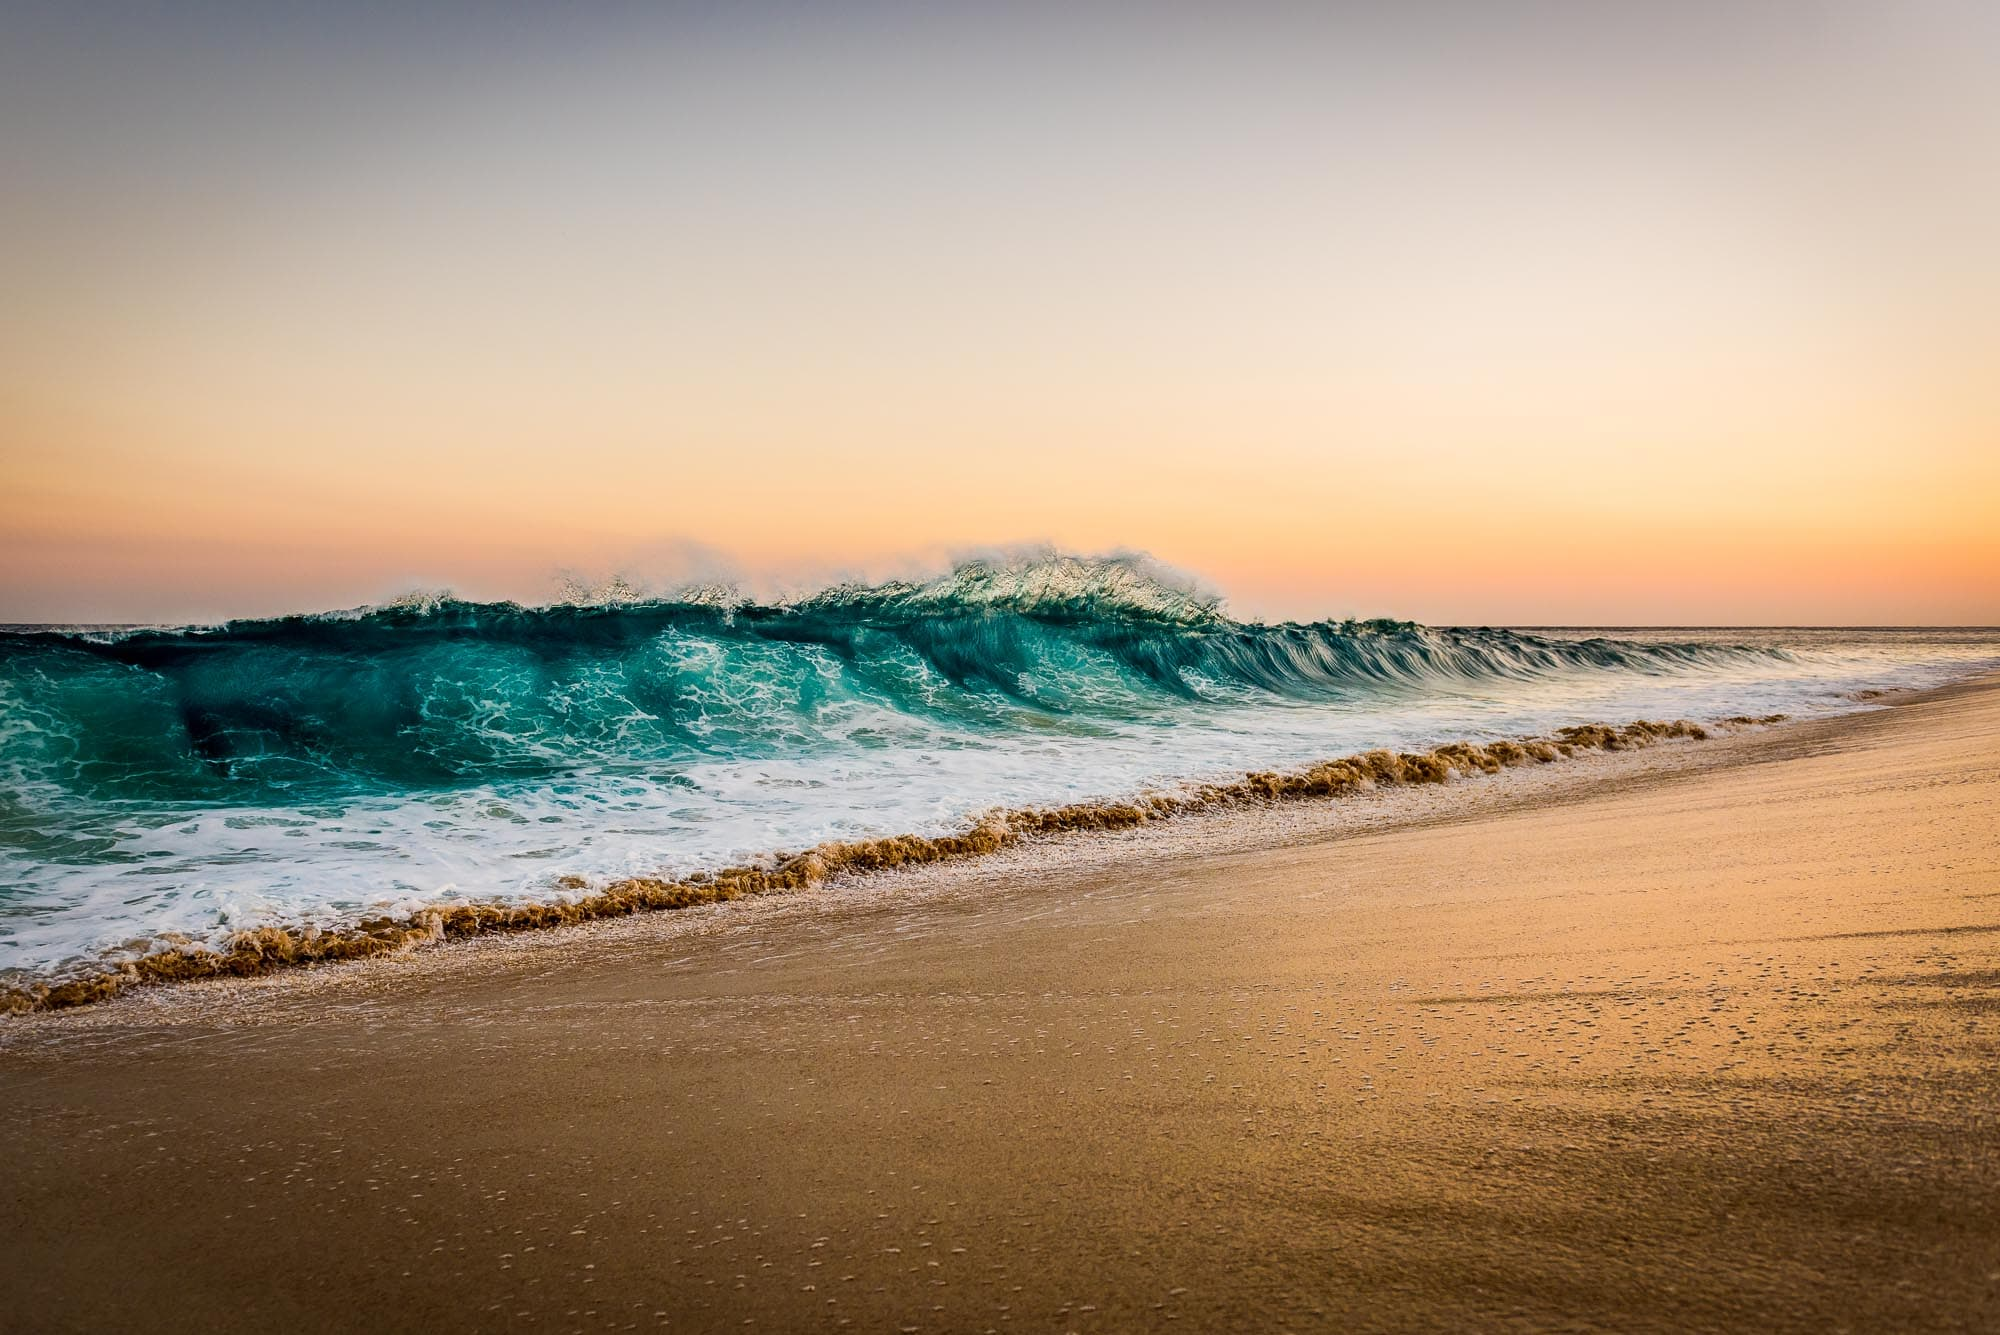 Wave crashing at sunset with the sky's color reflecting off the sand at Land's End in Cabo San Lucas